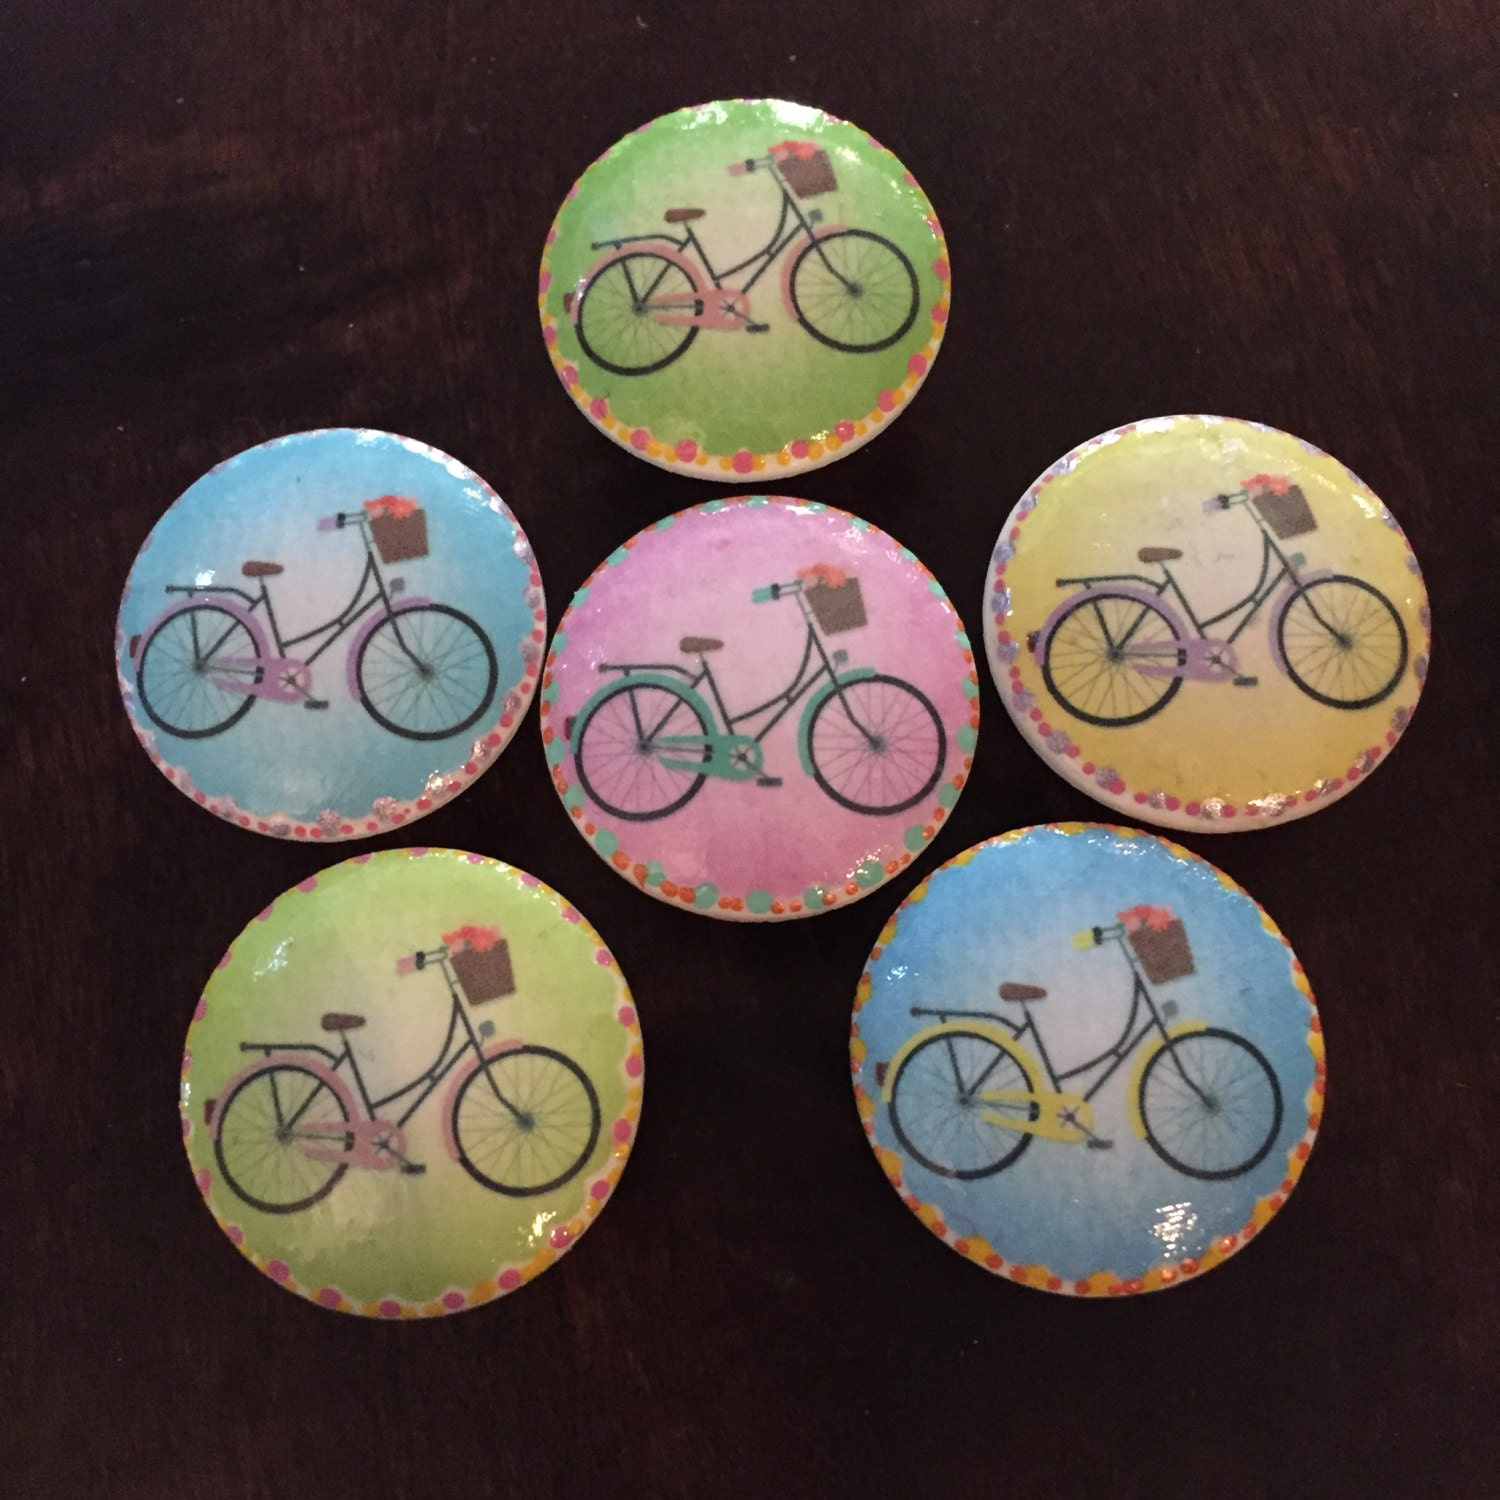 1 5 Inch Bicycle Knobs Bicycle With Basket Cabinet Knob